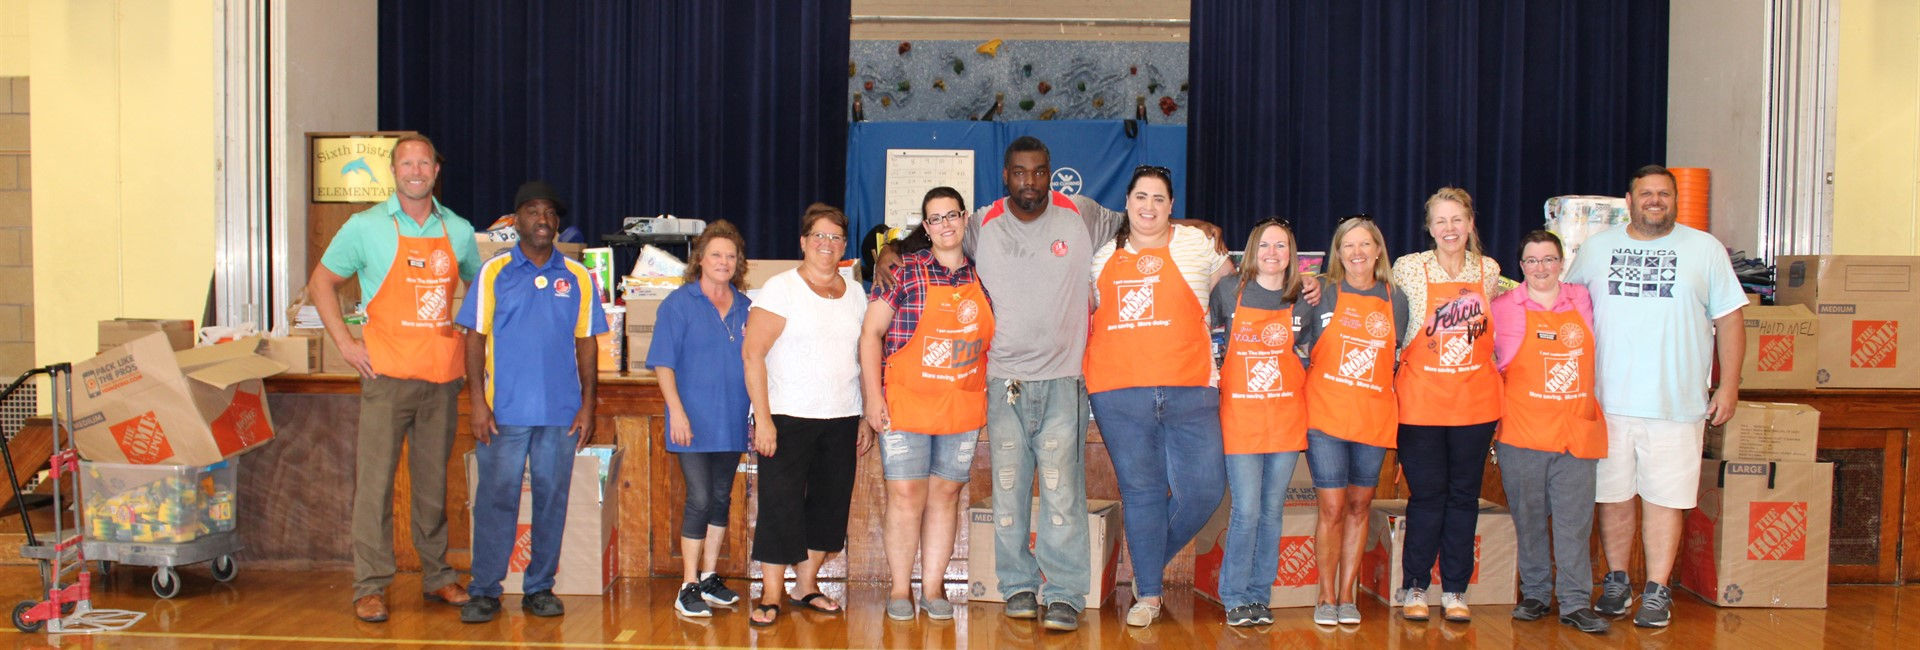 Home Depot Donates School Supplies